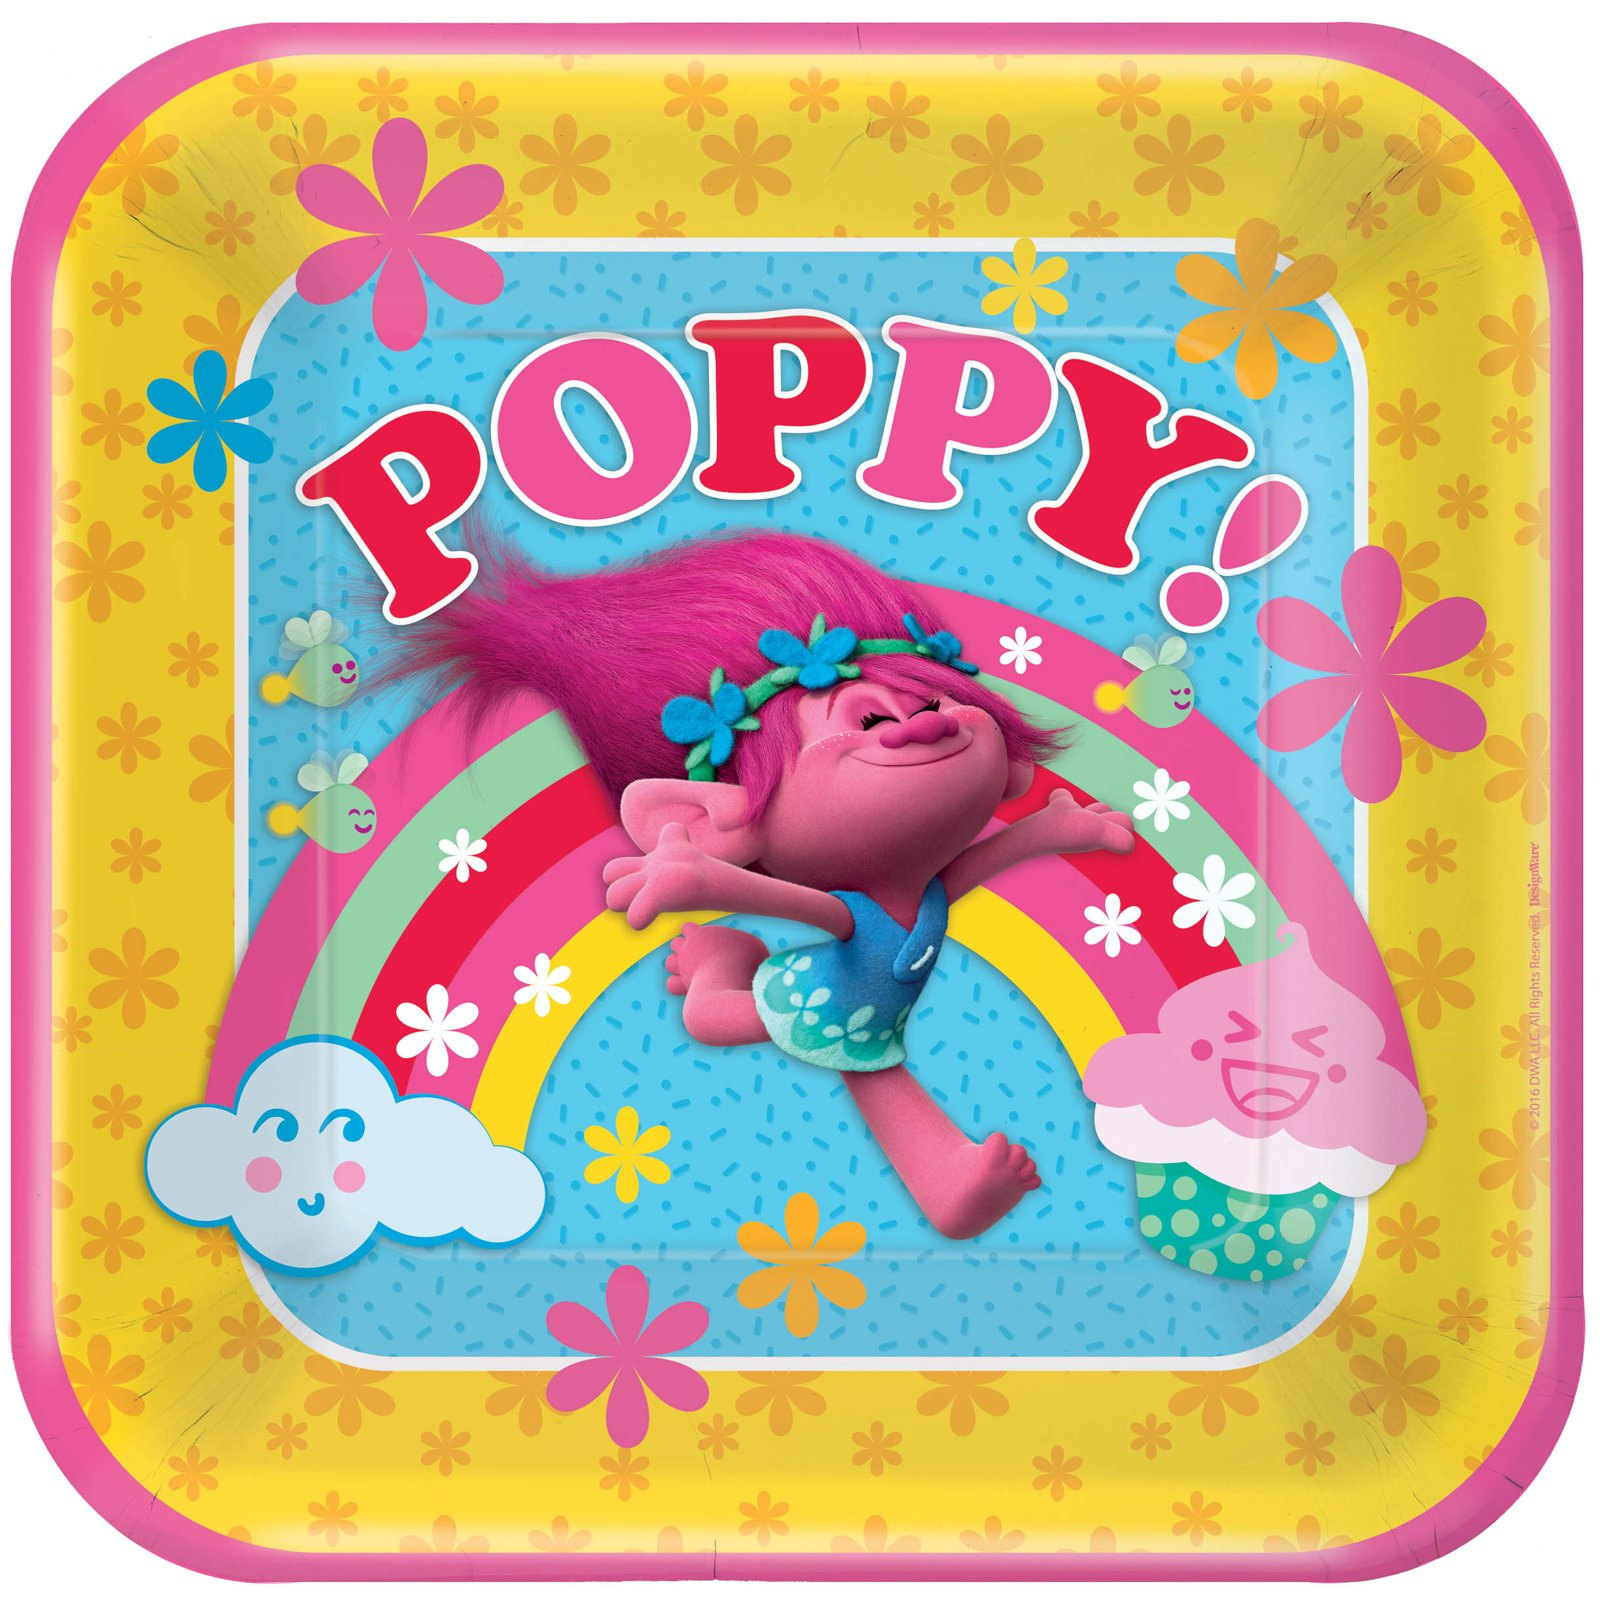 American Greetings Trolls Fairytale Colorful Poppy Party 9'' Dinner Plates Pack (24) by BirthdayExpress